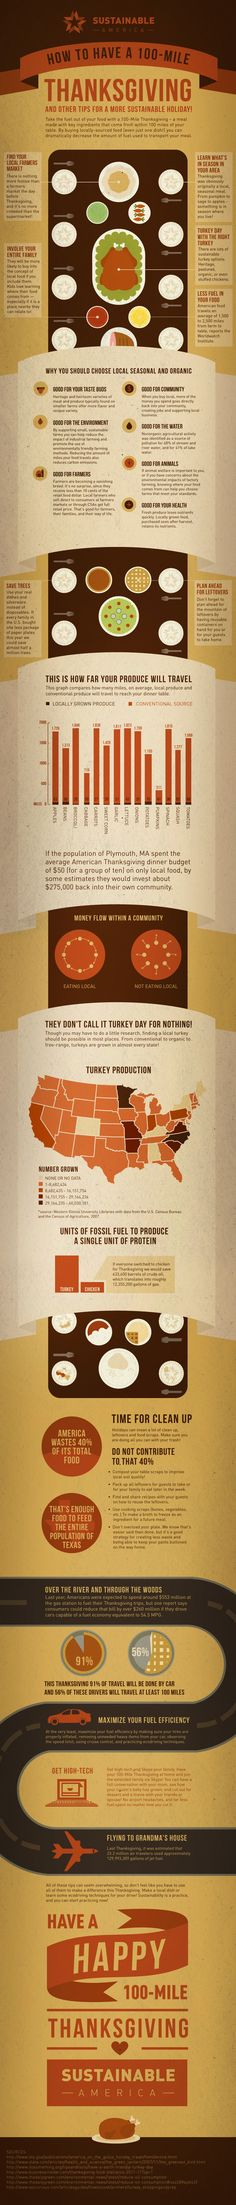 Tips for a Sustainable Thanksgiving: How to Have a 100-Mile Holiday [INFOGRAPHIC] - http://dashburst.com/infographic/sustainable-thanksgiving-tips/